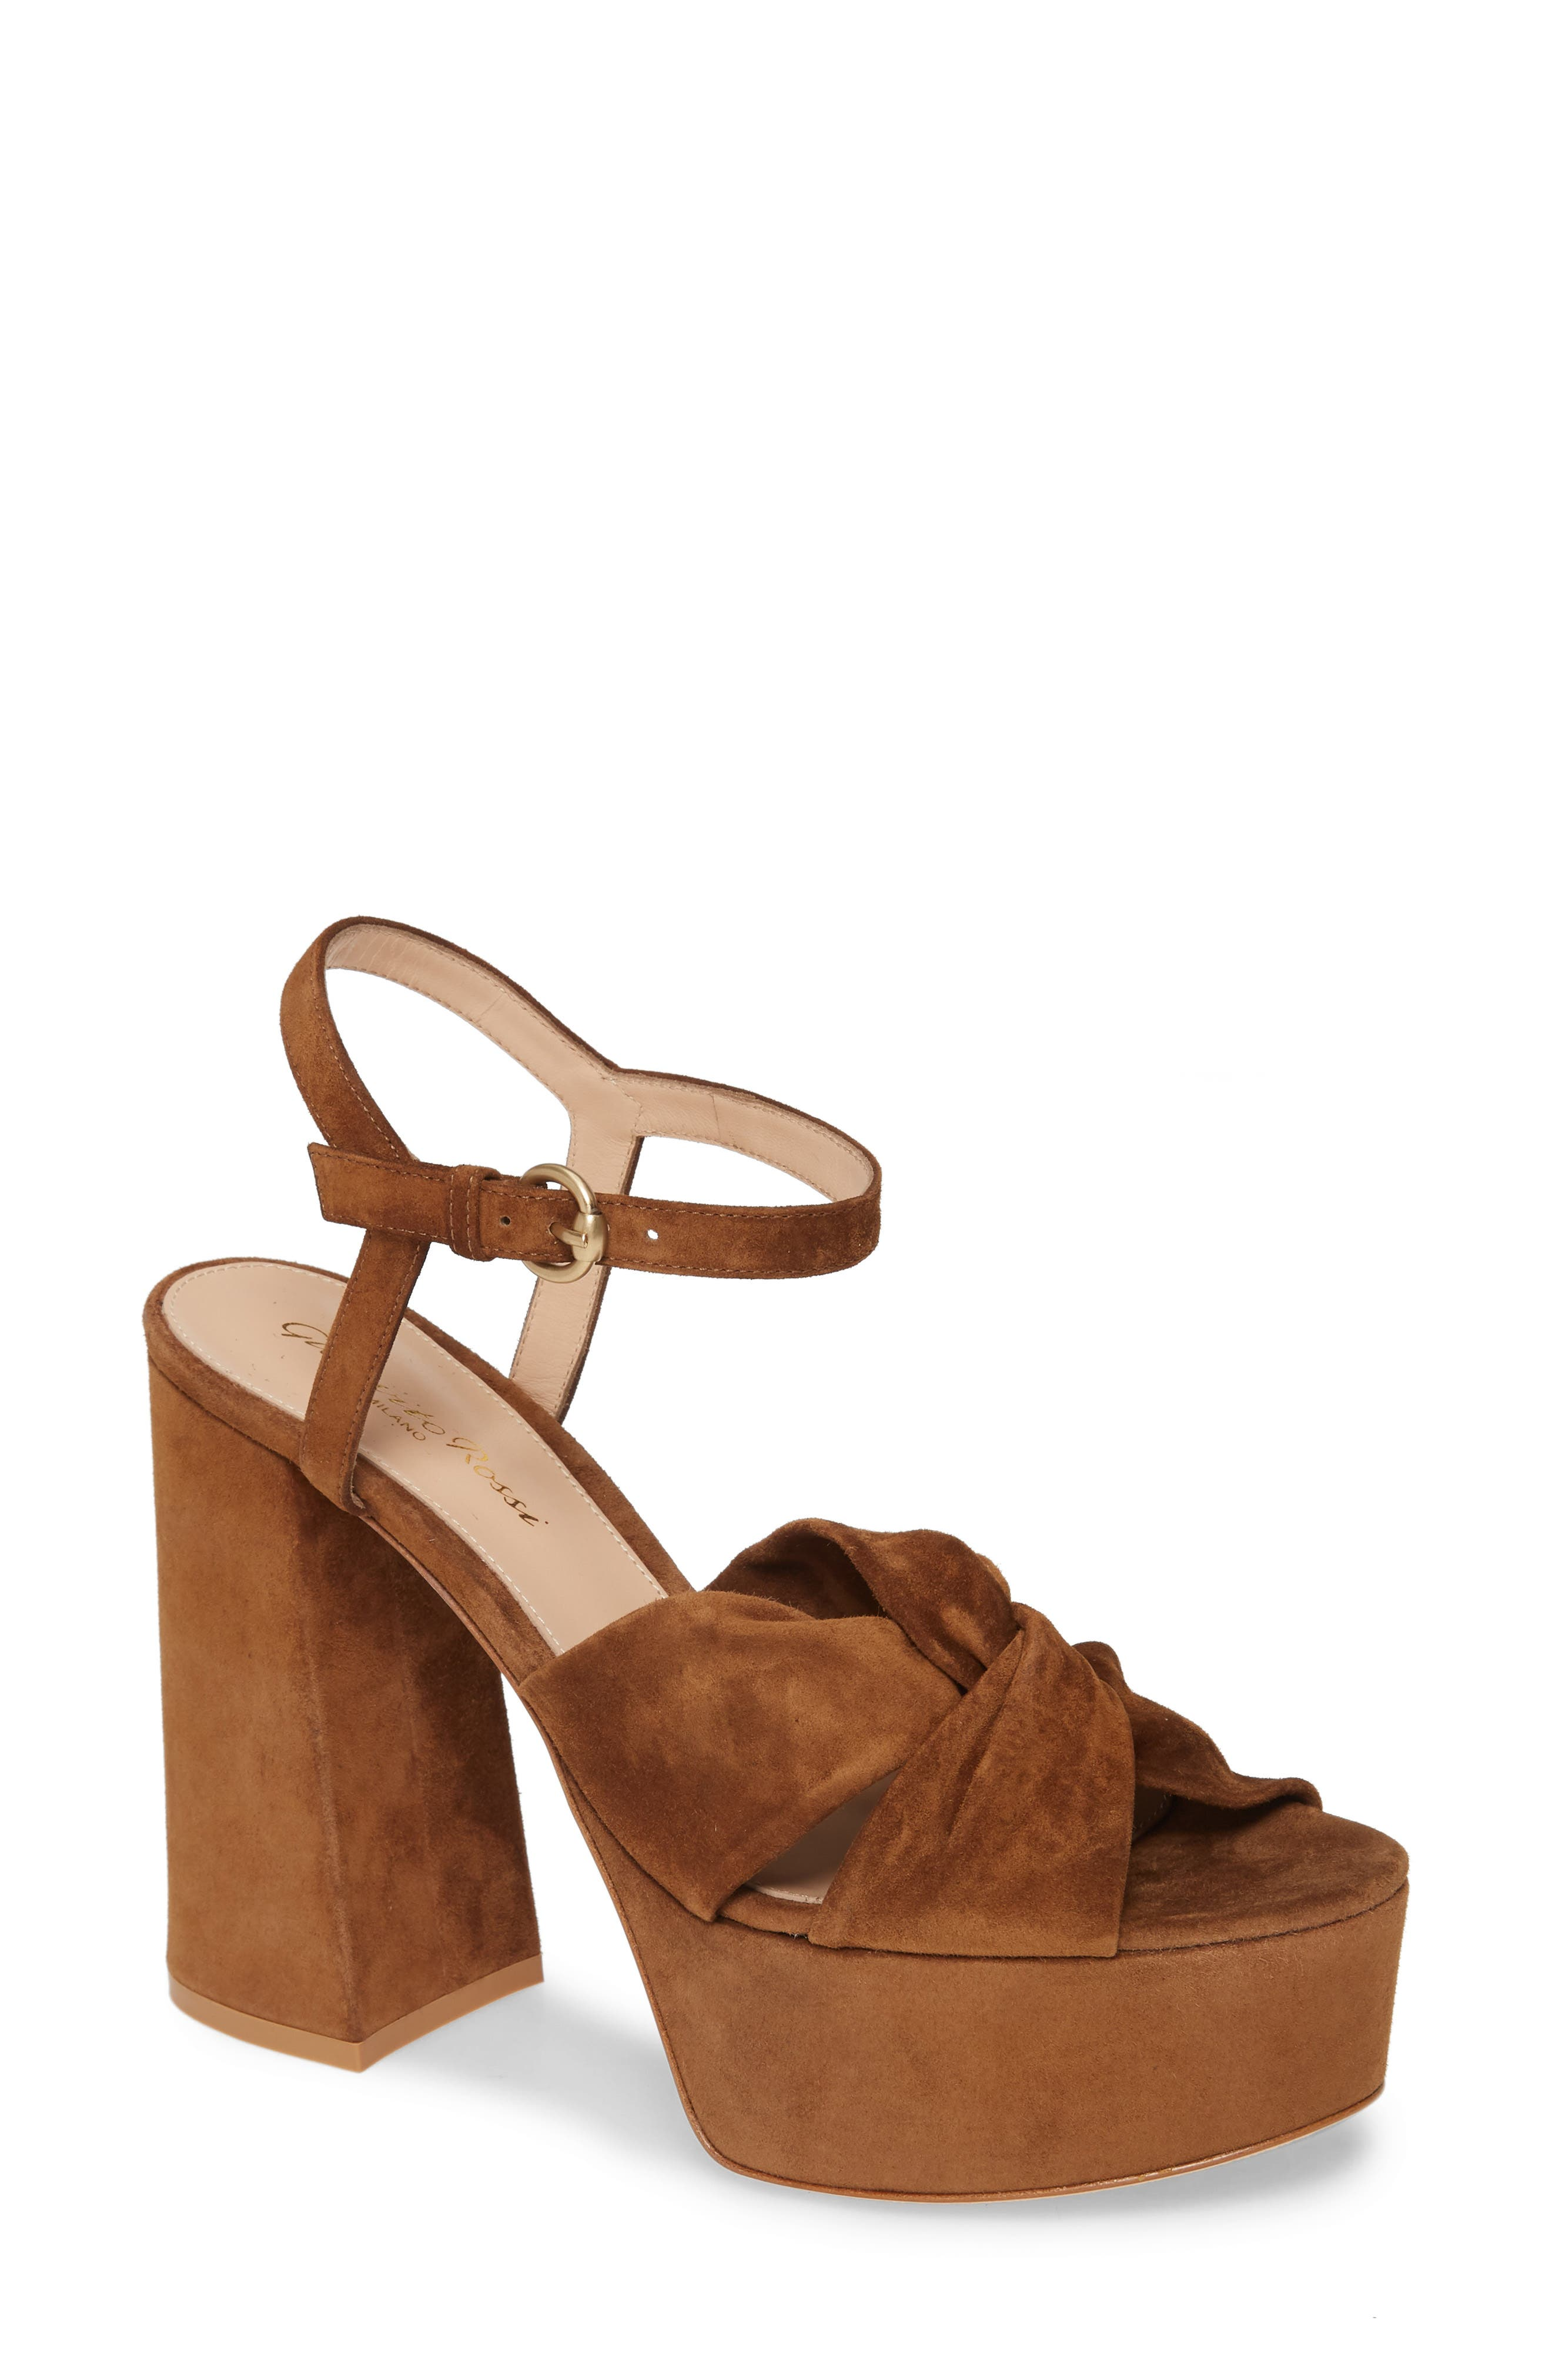 A towering flared heel and platform lend major \'70s-inspired style to an Italian-made sandal featuring softly knotted straps. Style Name: Gianvito Rossi Donna Platform Sandal (Women). Style Number: 5919834. Available in stores.